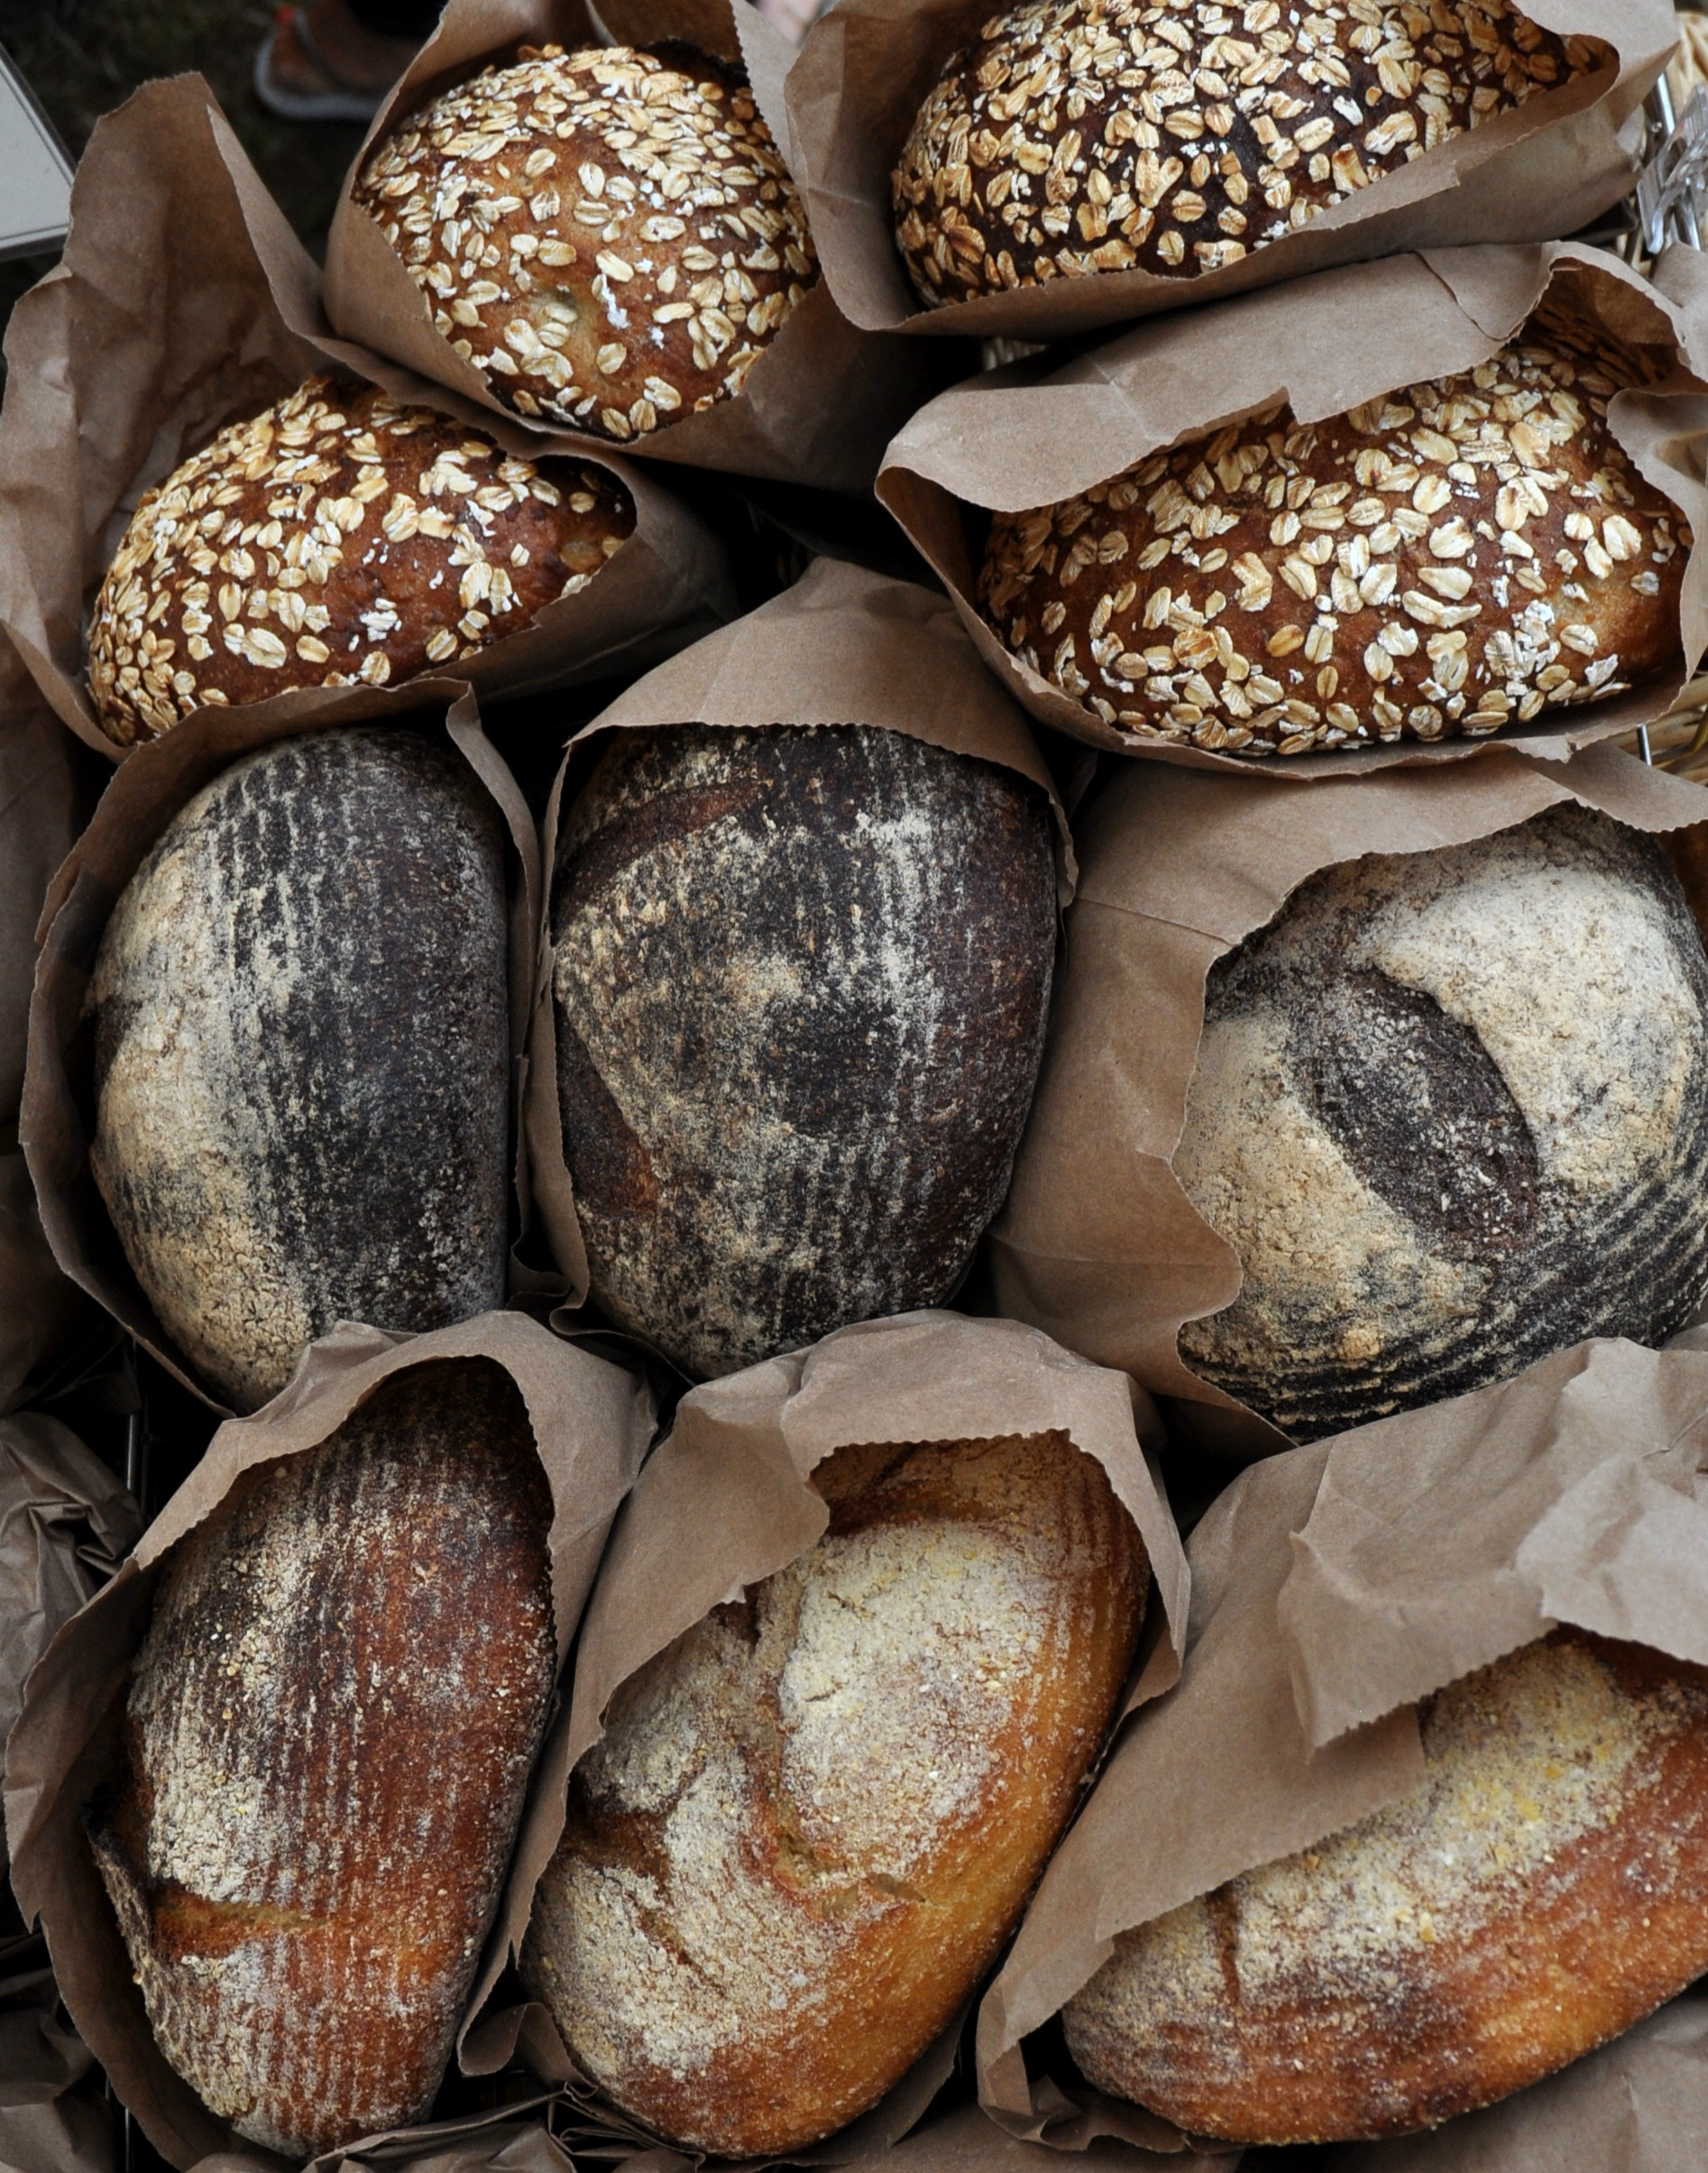 Artisan breads from Tall Grass Bakery at Ballard Farmers Market. Copyright Zachary D. Lyons.